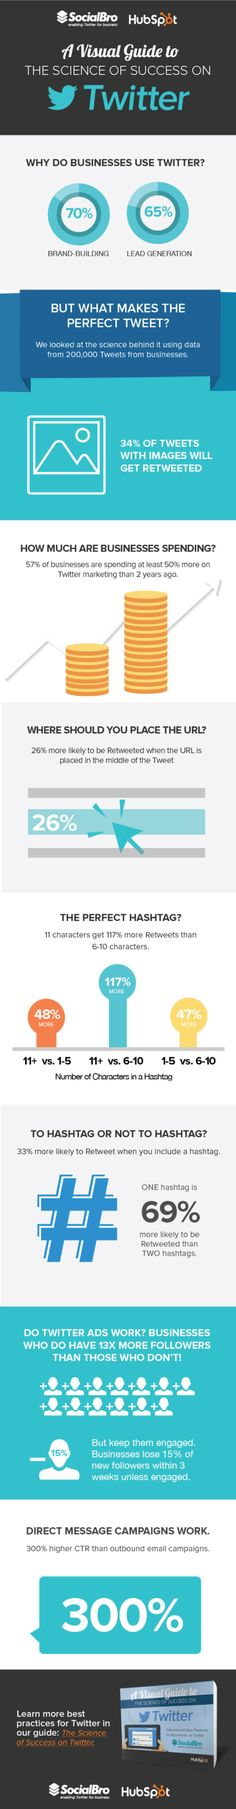 How to Succeed on Twitter: 10 Proven Stats To Guide Your Strategy #Infographic